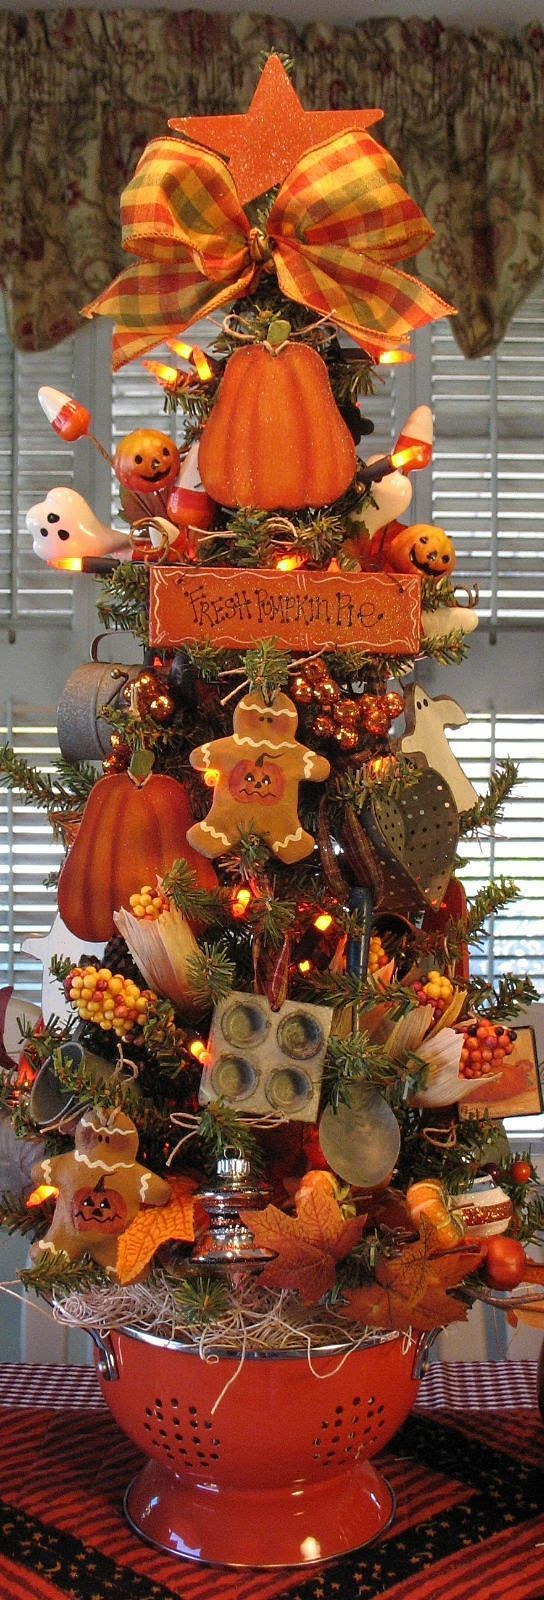 Love this!! A smaller version for the kitchen. Use a small table top xmas tree and put on some lights and fall ornaments - even adding real gingerbread cookies would be a great treat for the kids:)